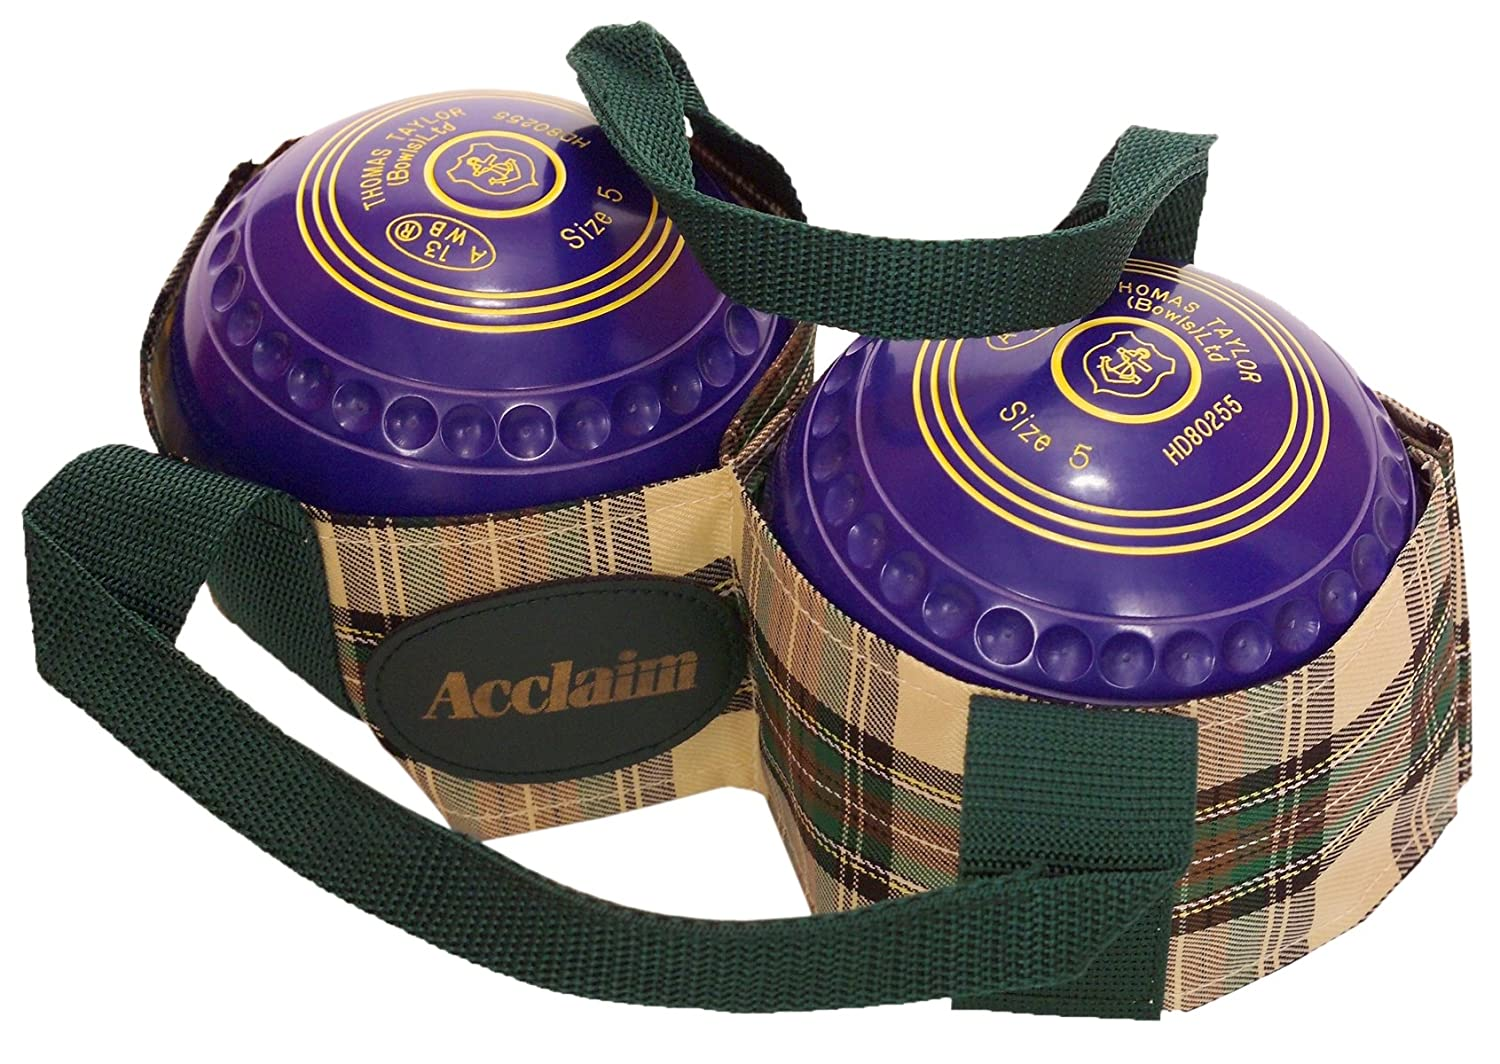 Acclaim Arran Tartan Two Bowl Level Lawn Flat Green Short Mat Bowls Carrier Green/Cream